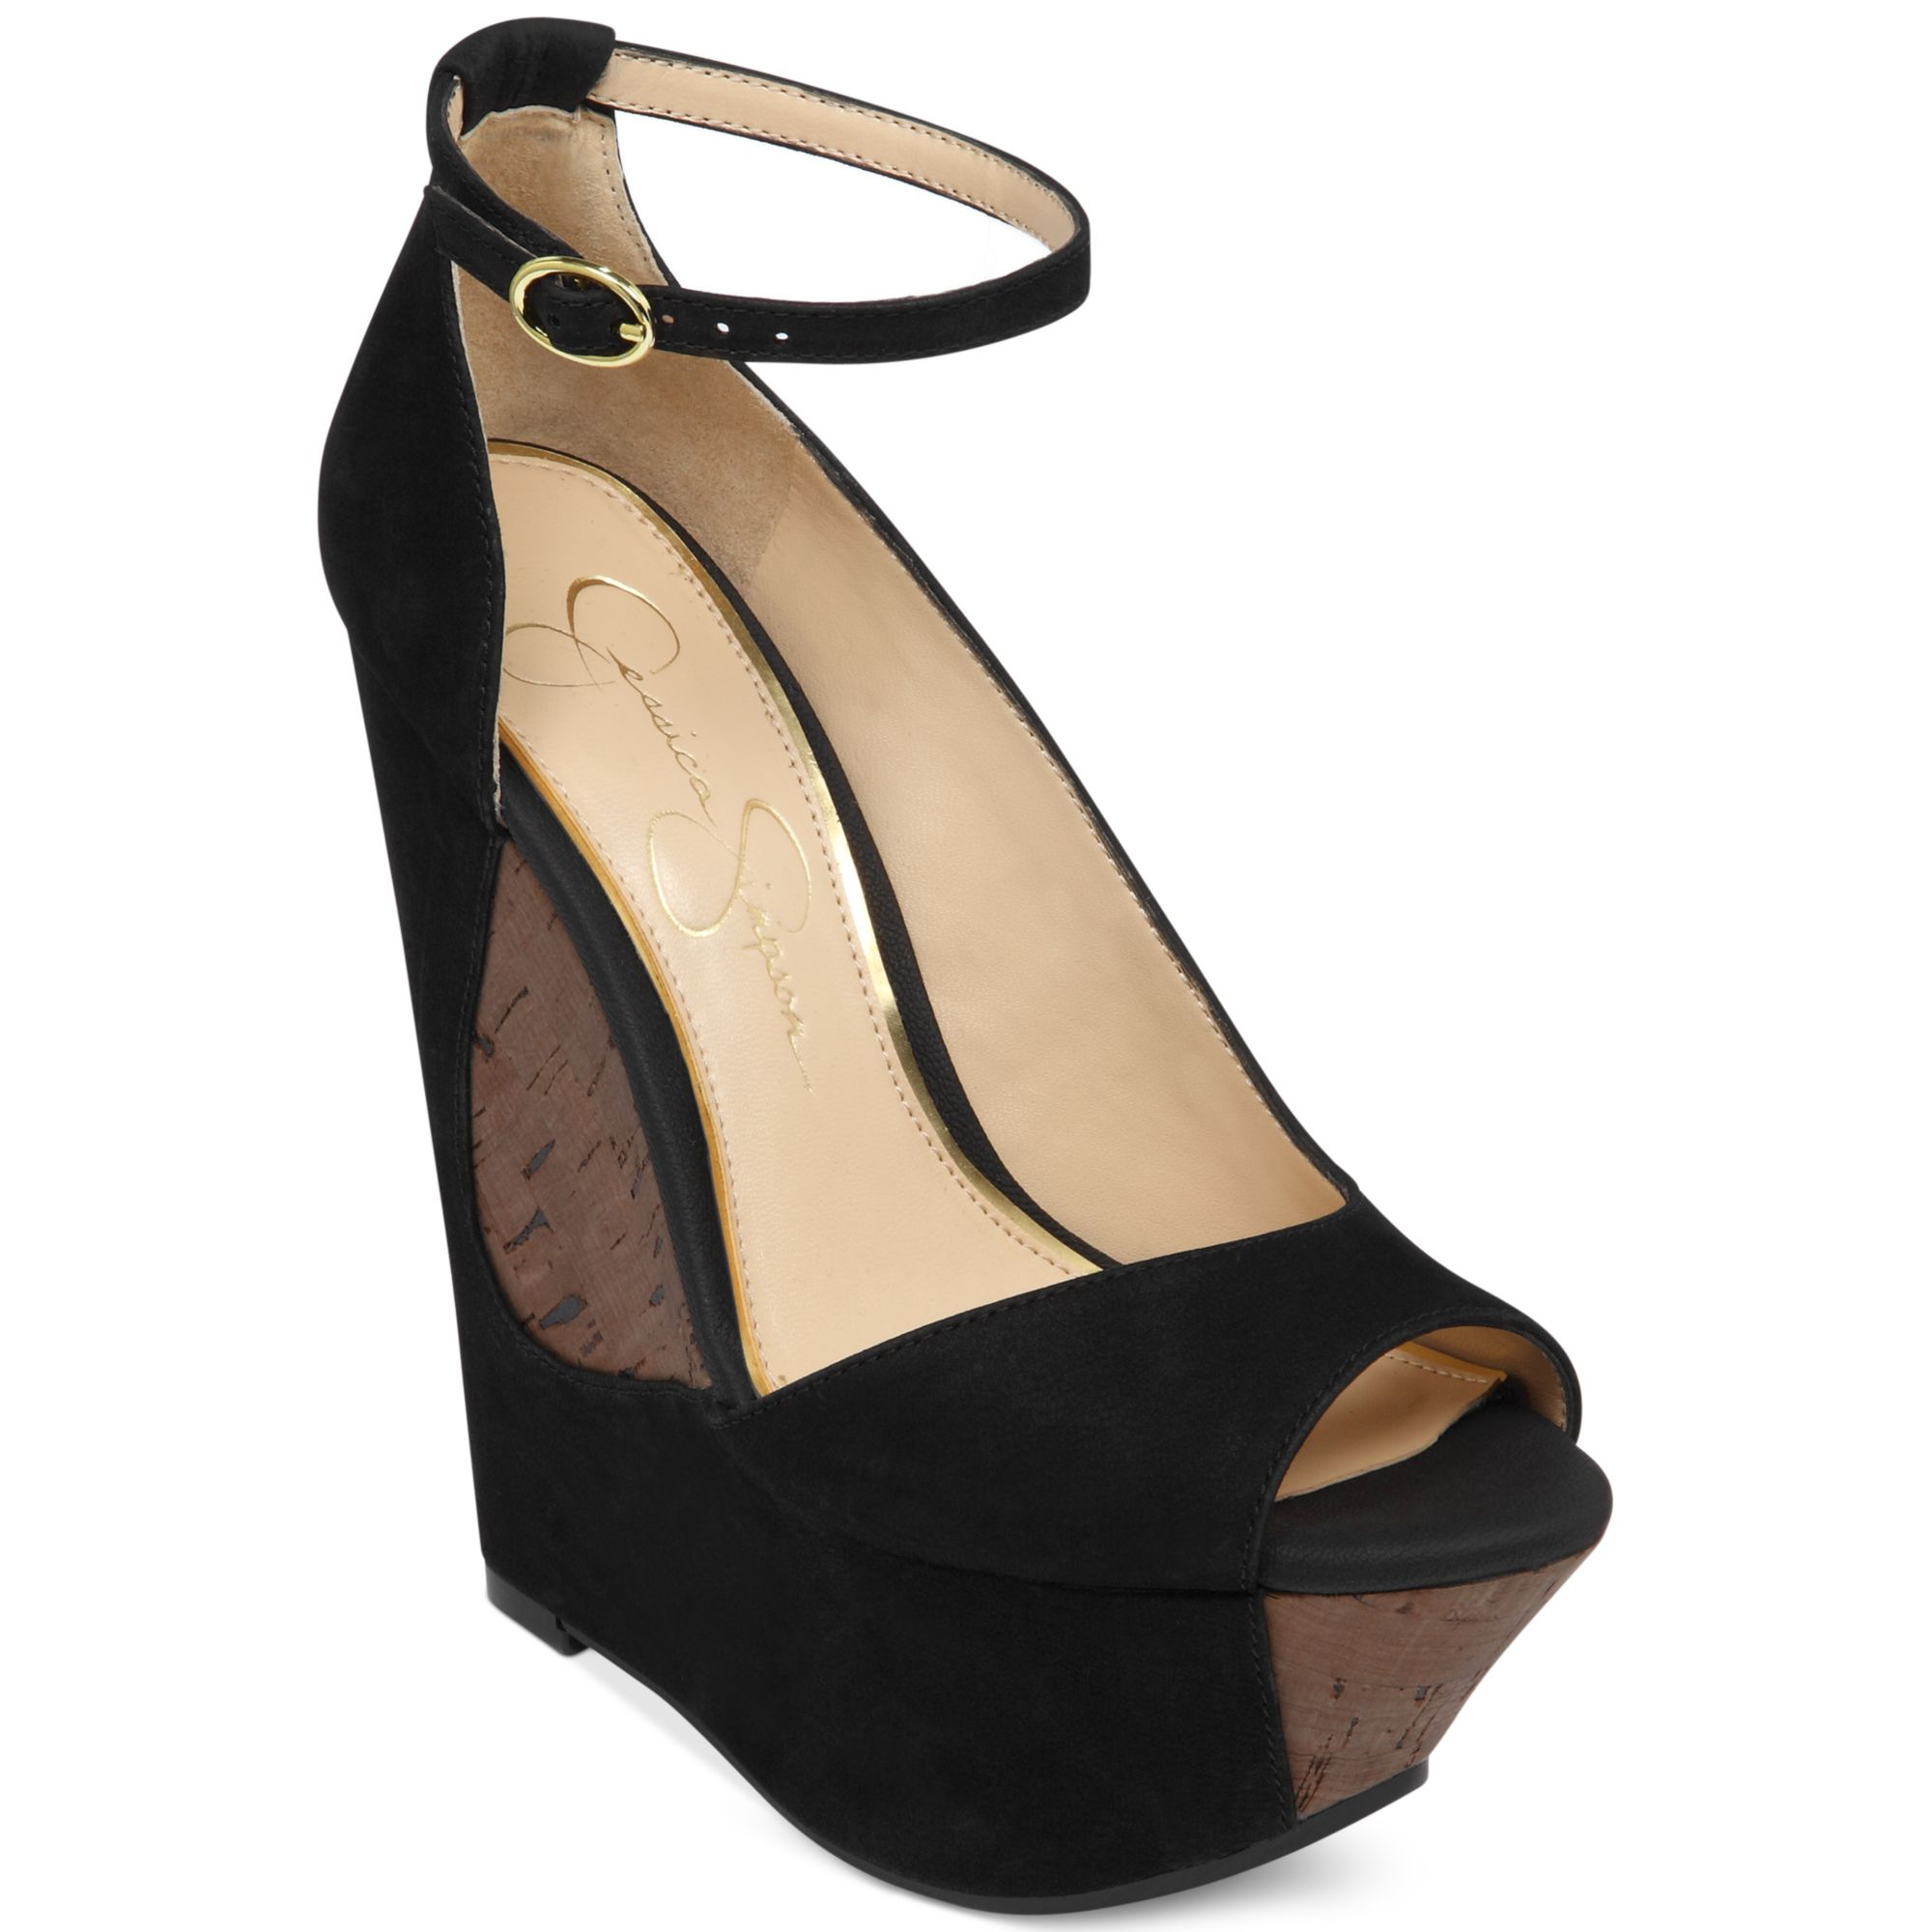 5f555ff59a6 Lyst - Jessica Simpson Maggey Ankle Strap Platform Wedges in Black